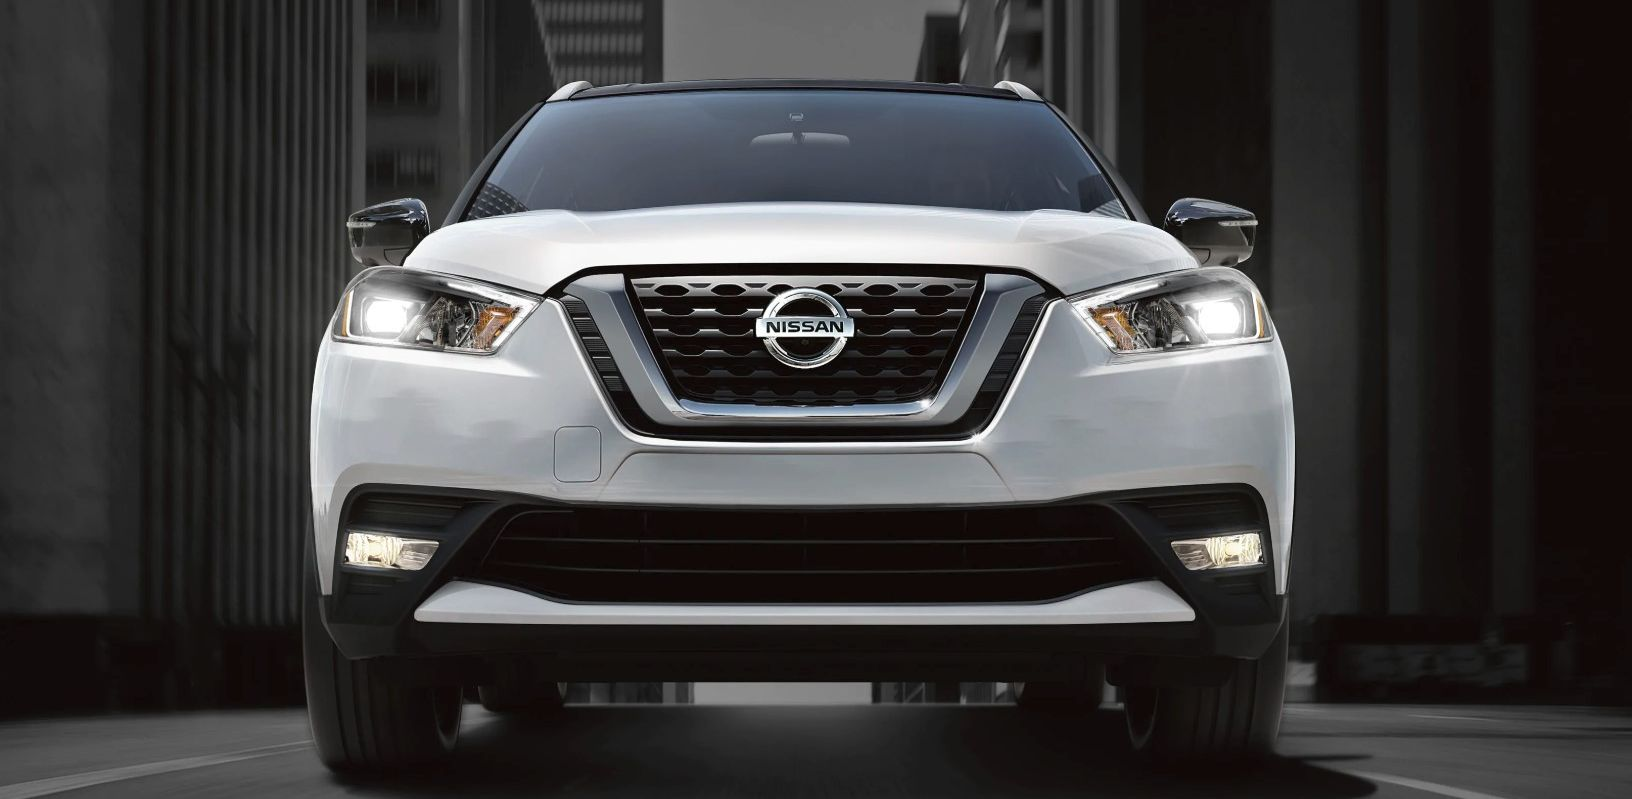 2019 Nissan Kicks Financing near Burbank, IL - Western